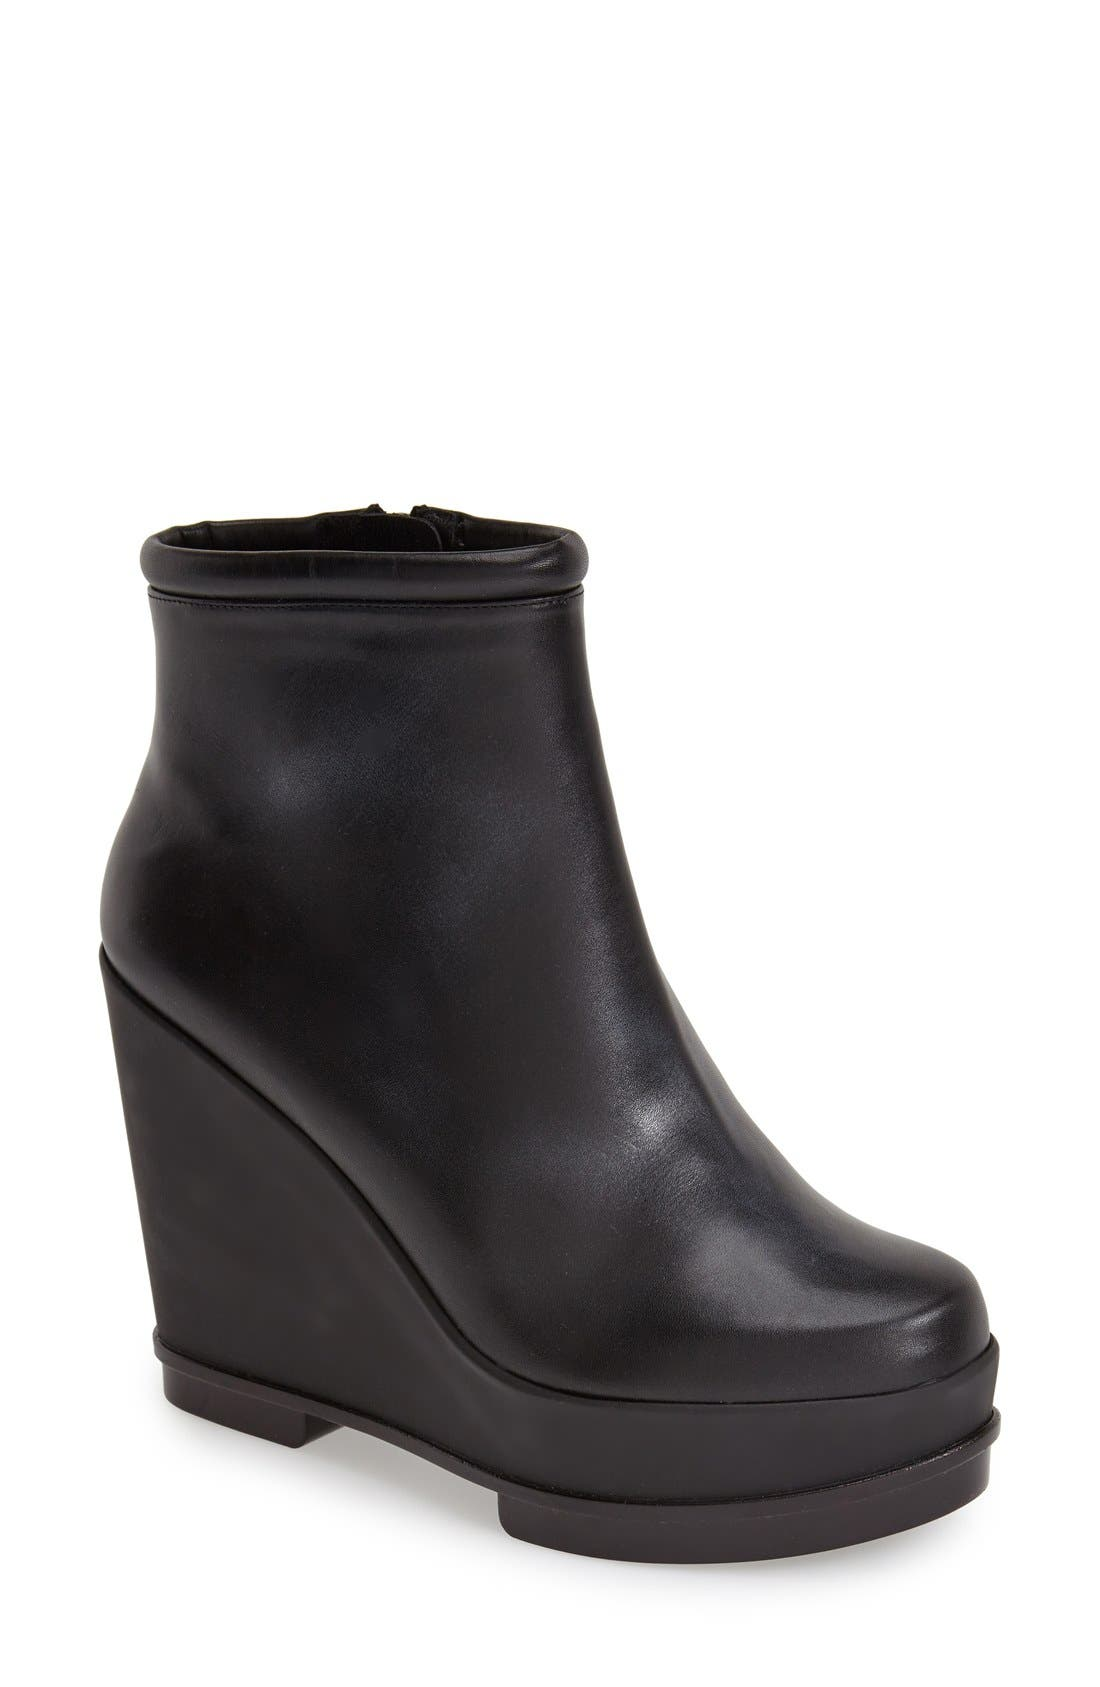 Alternate Image 1 Selected - Robert Clergerie 'Sarlaj' Wedge Bootie (Women)